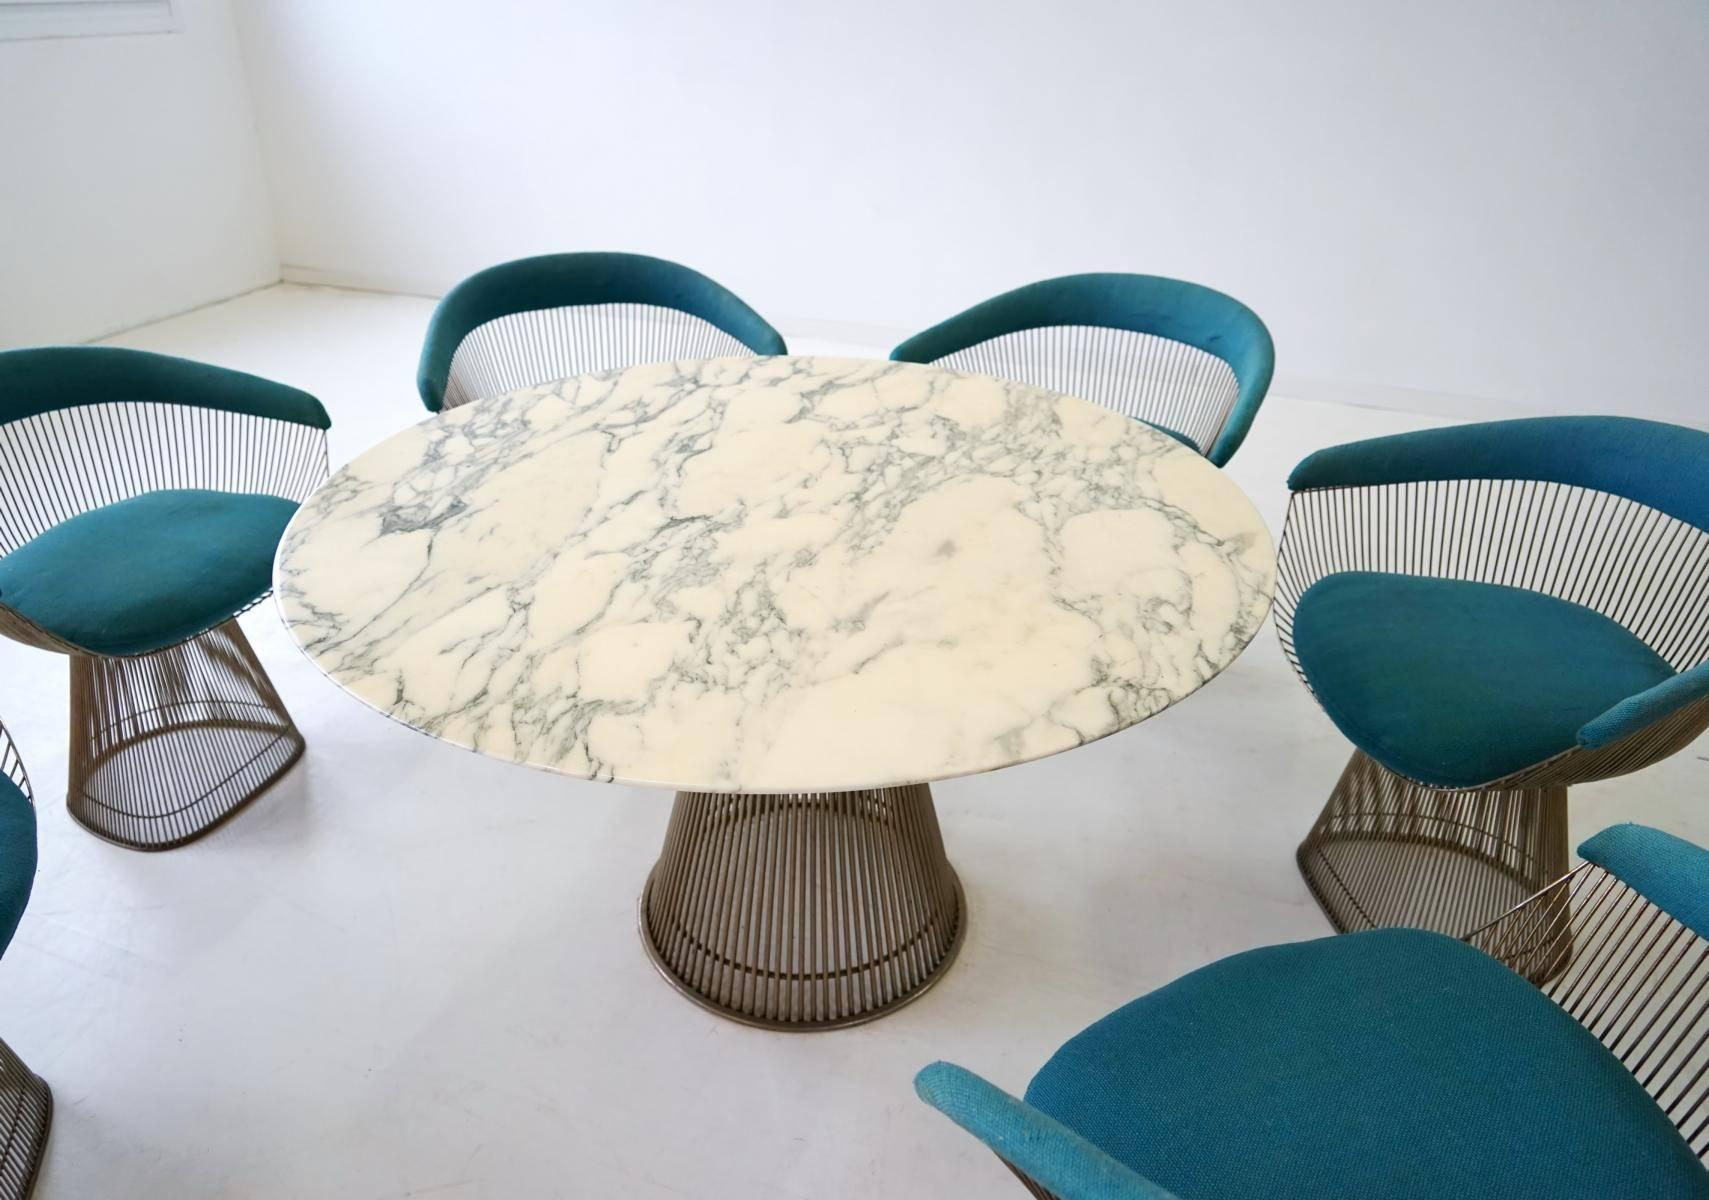 ed5b9ff3c6aa Set of Dining Table and Six Side Chair by Warren Platner Knoll  International 1960s at 1stdibs